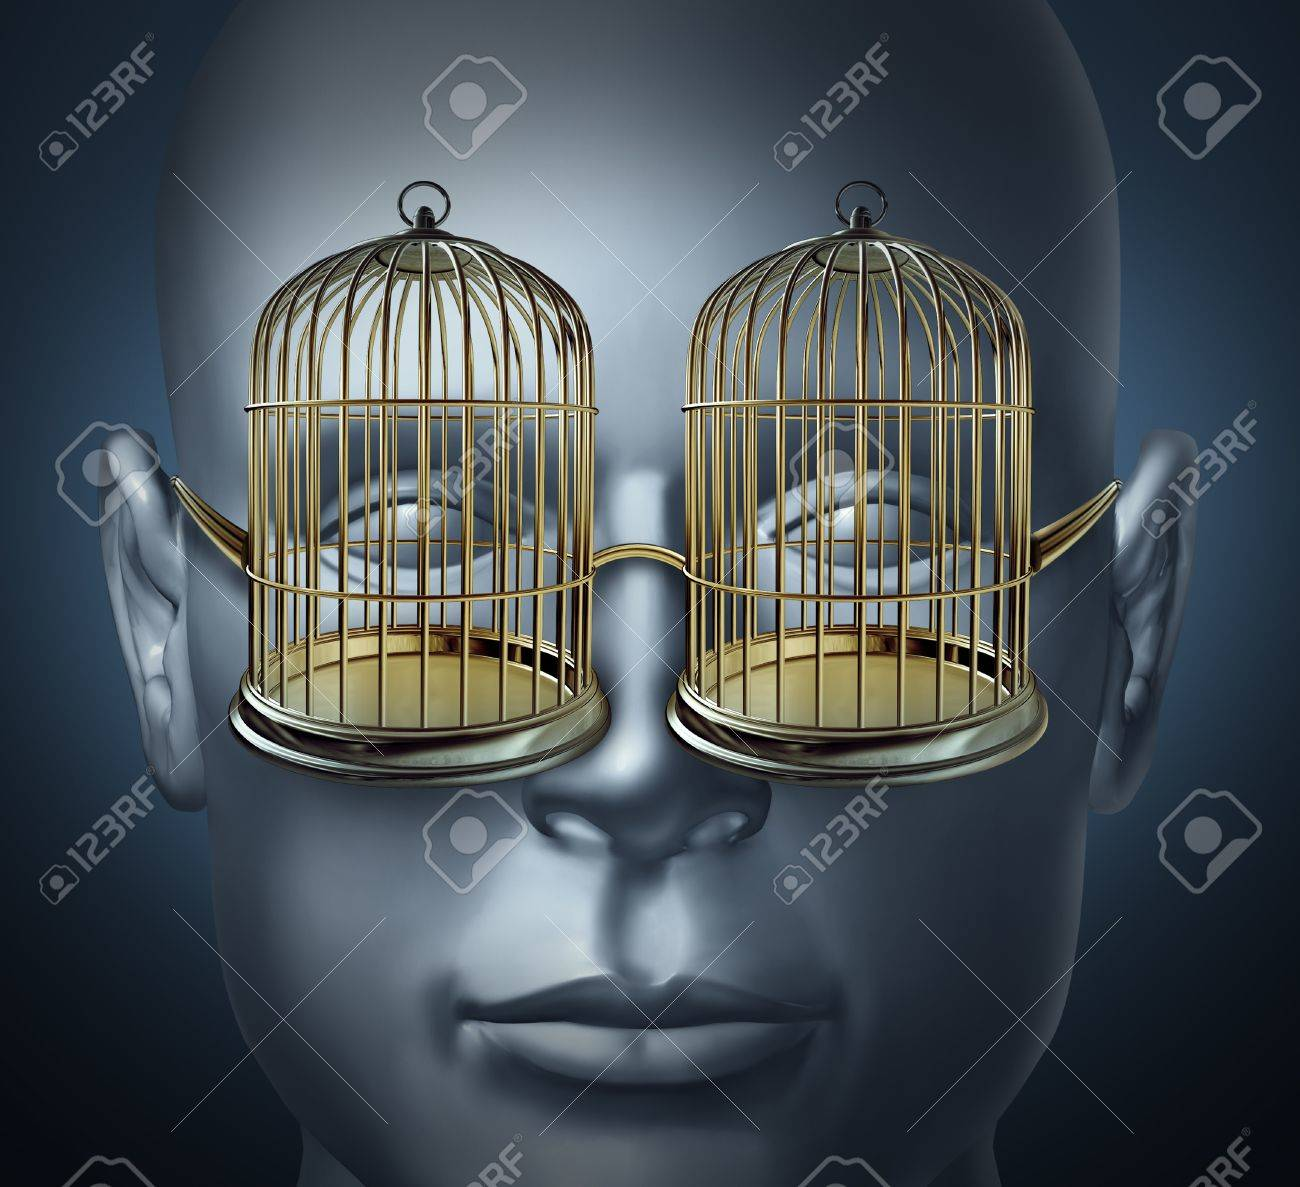 bird cage prison shaped eye glasses as symbols of being imprisoned and trapped Stock Photo - 17472609